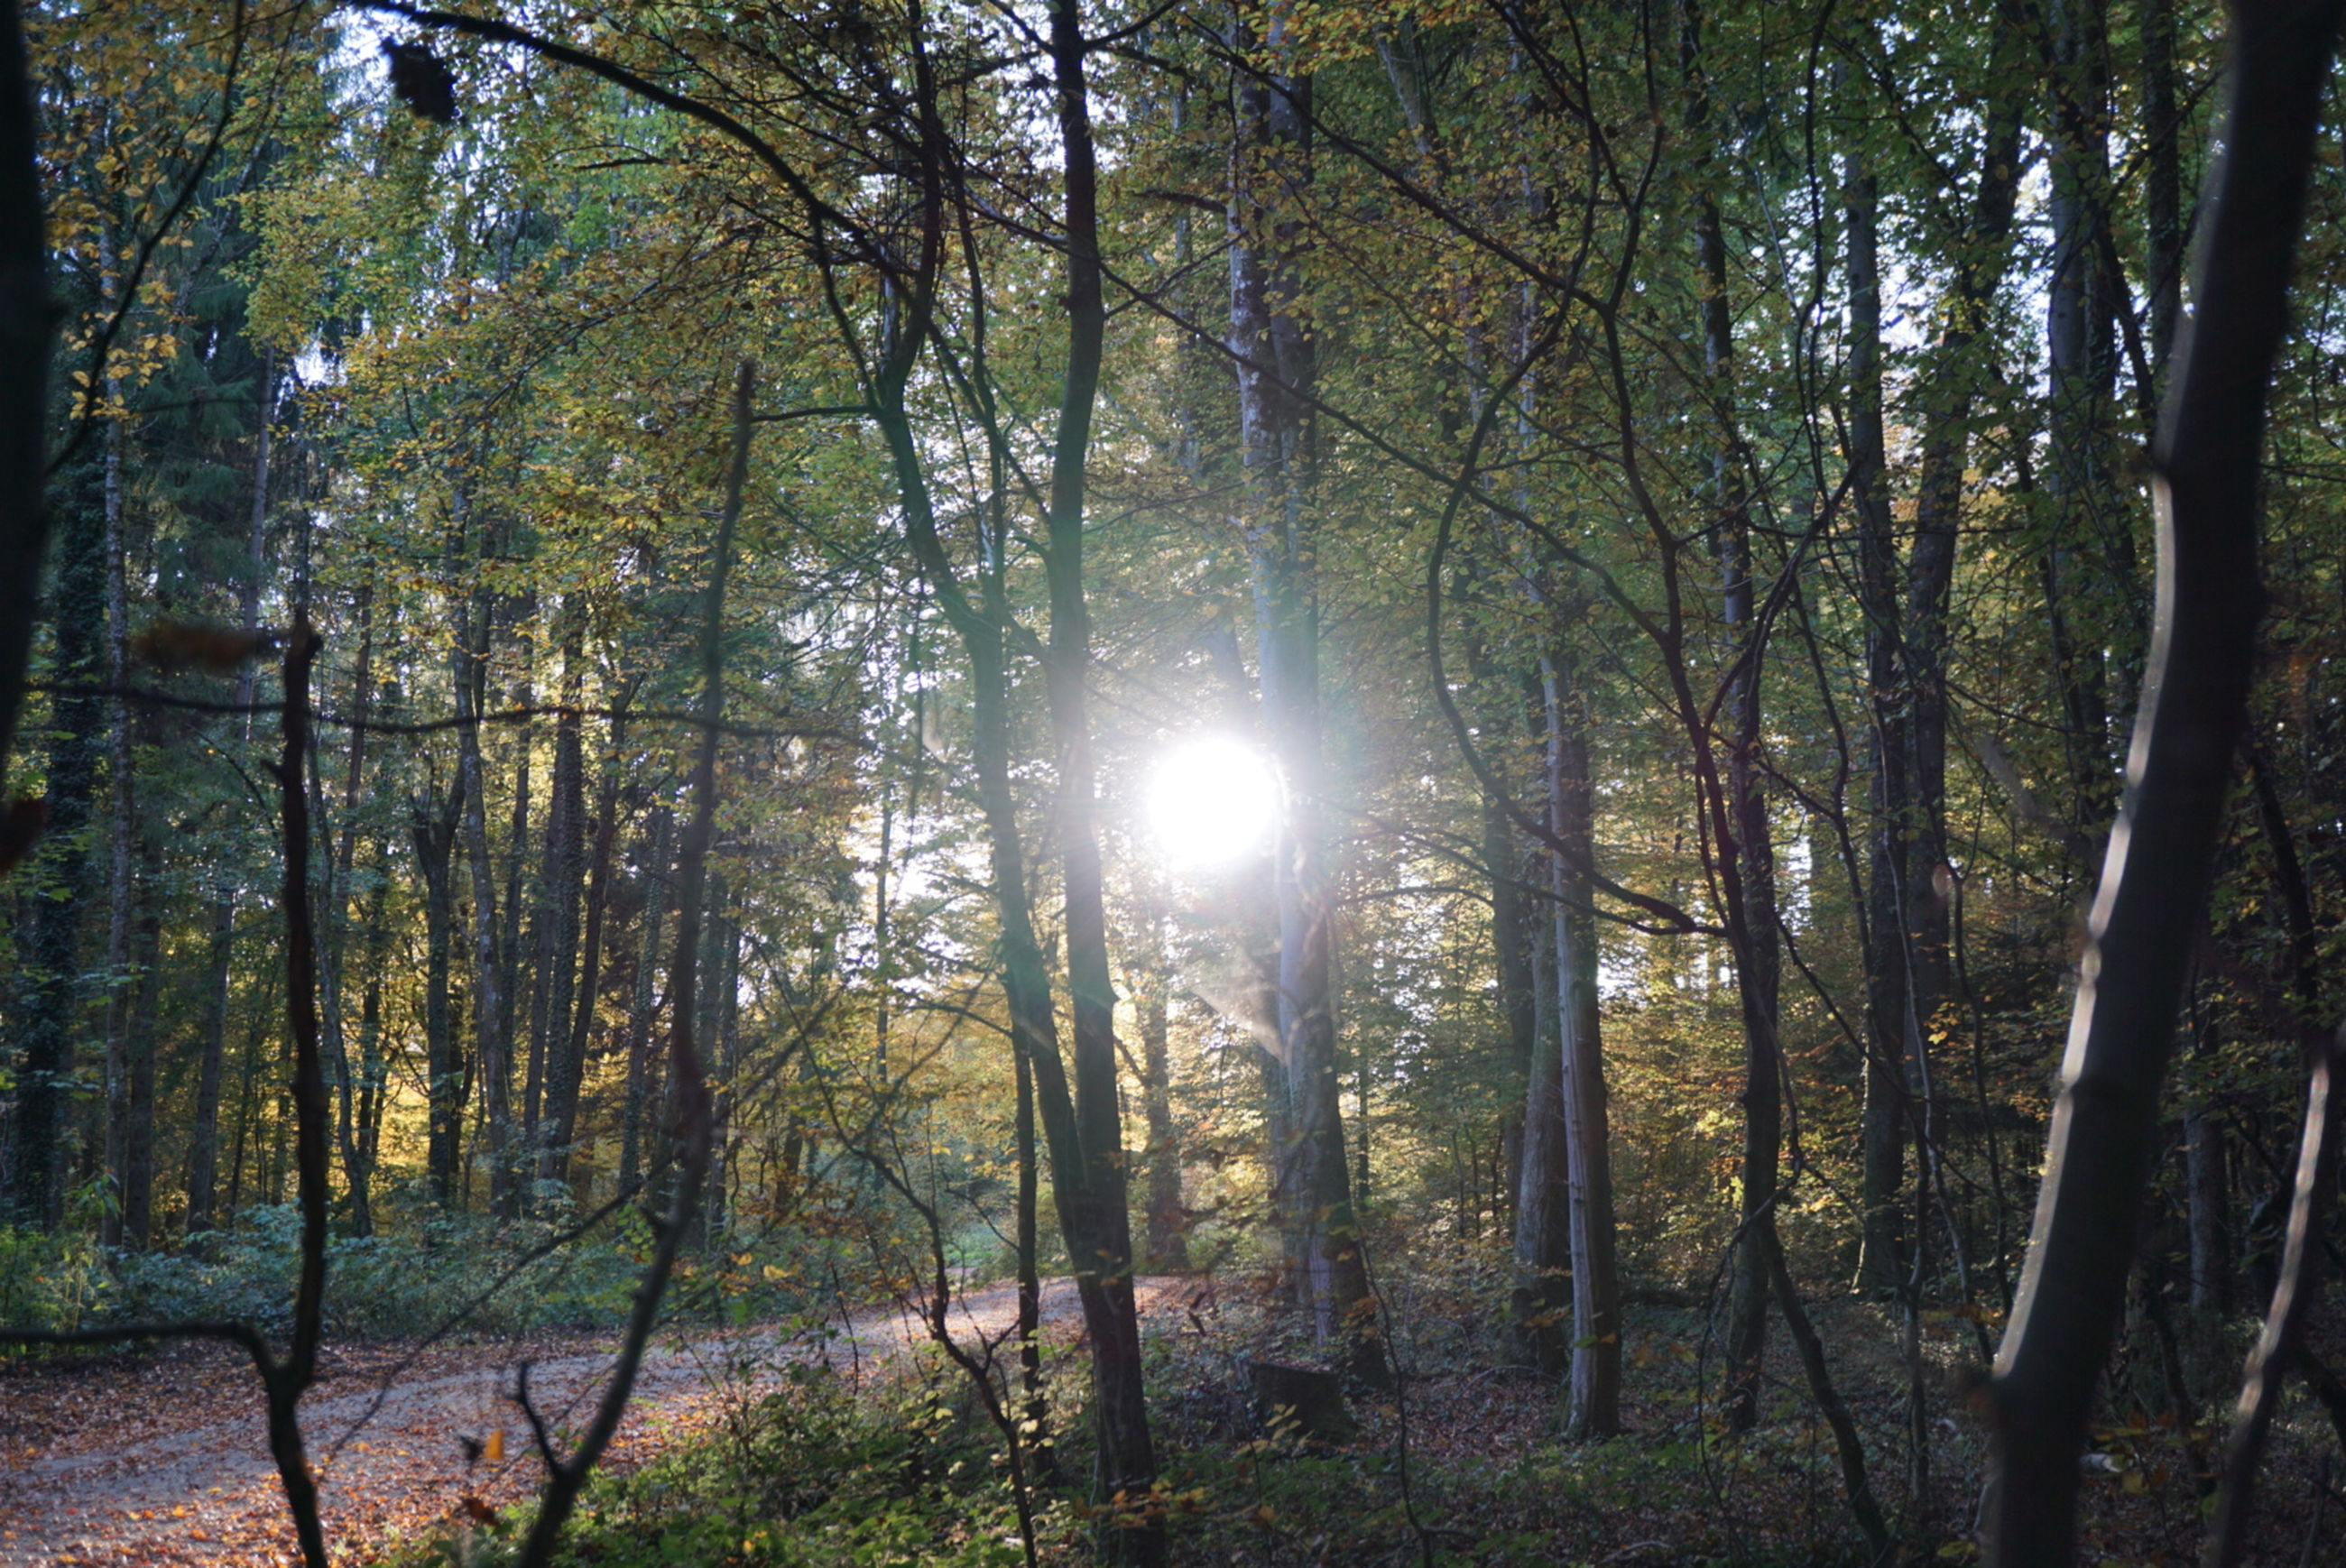 nature, tree, forest, tranquility, beauty in nature, sunlight, sun, outdoors, scenics, no people, landscape, day, growth, branch